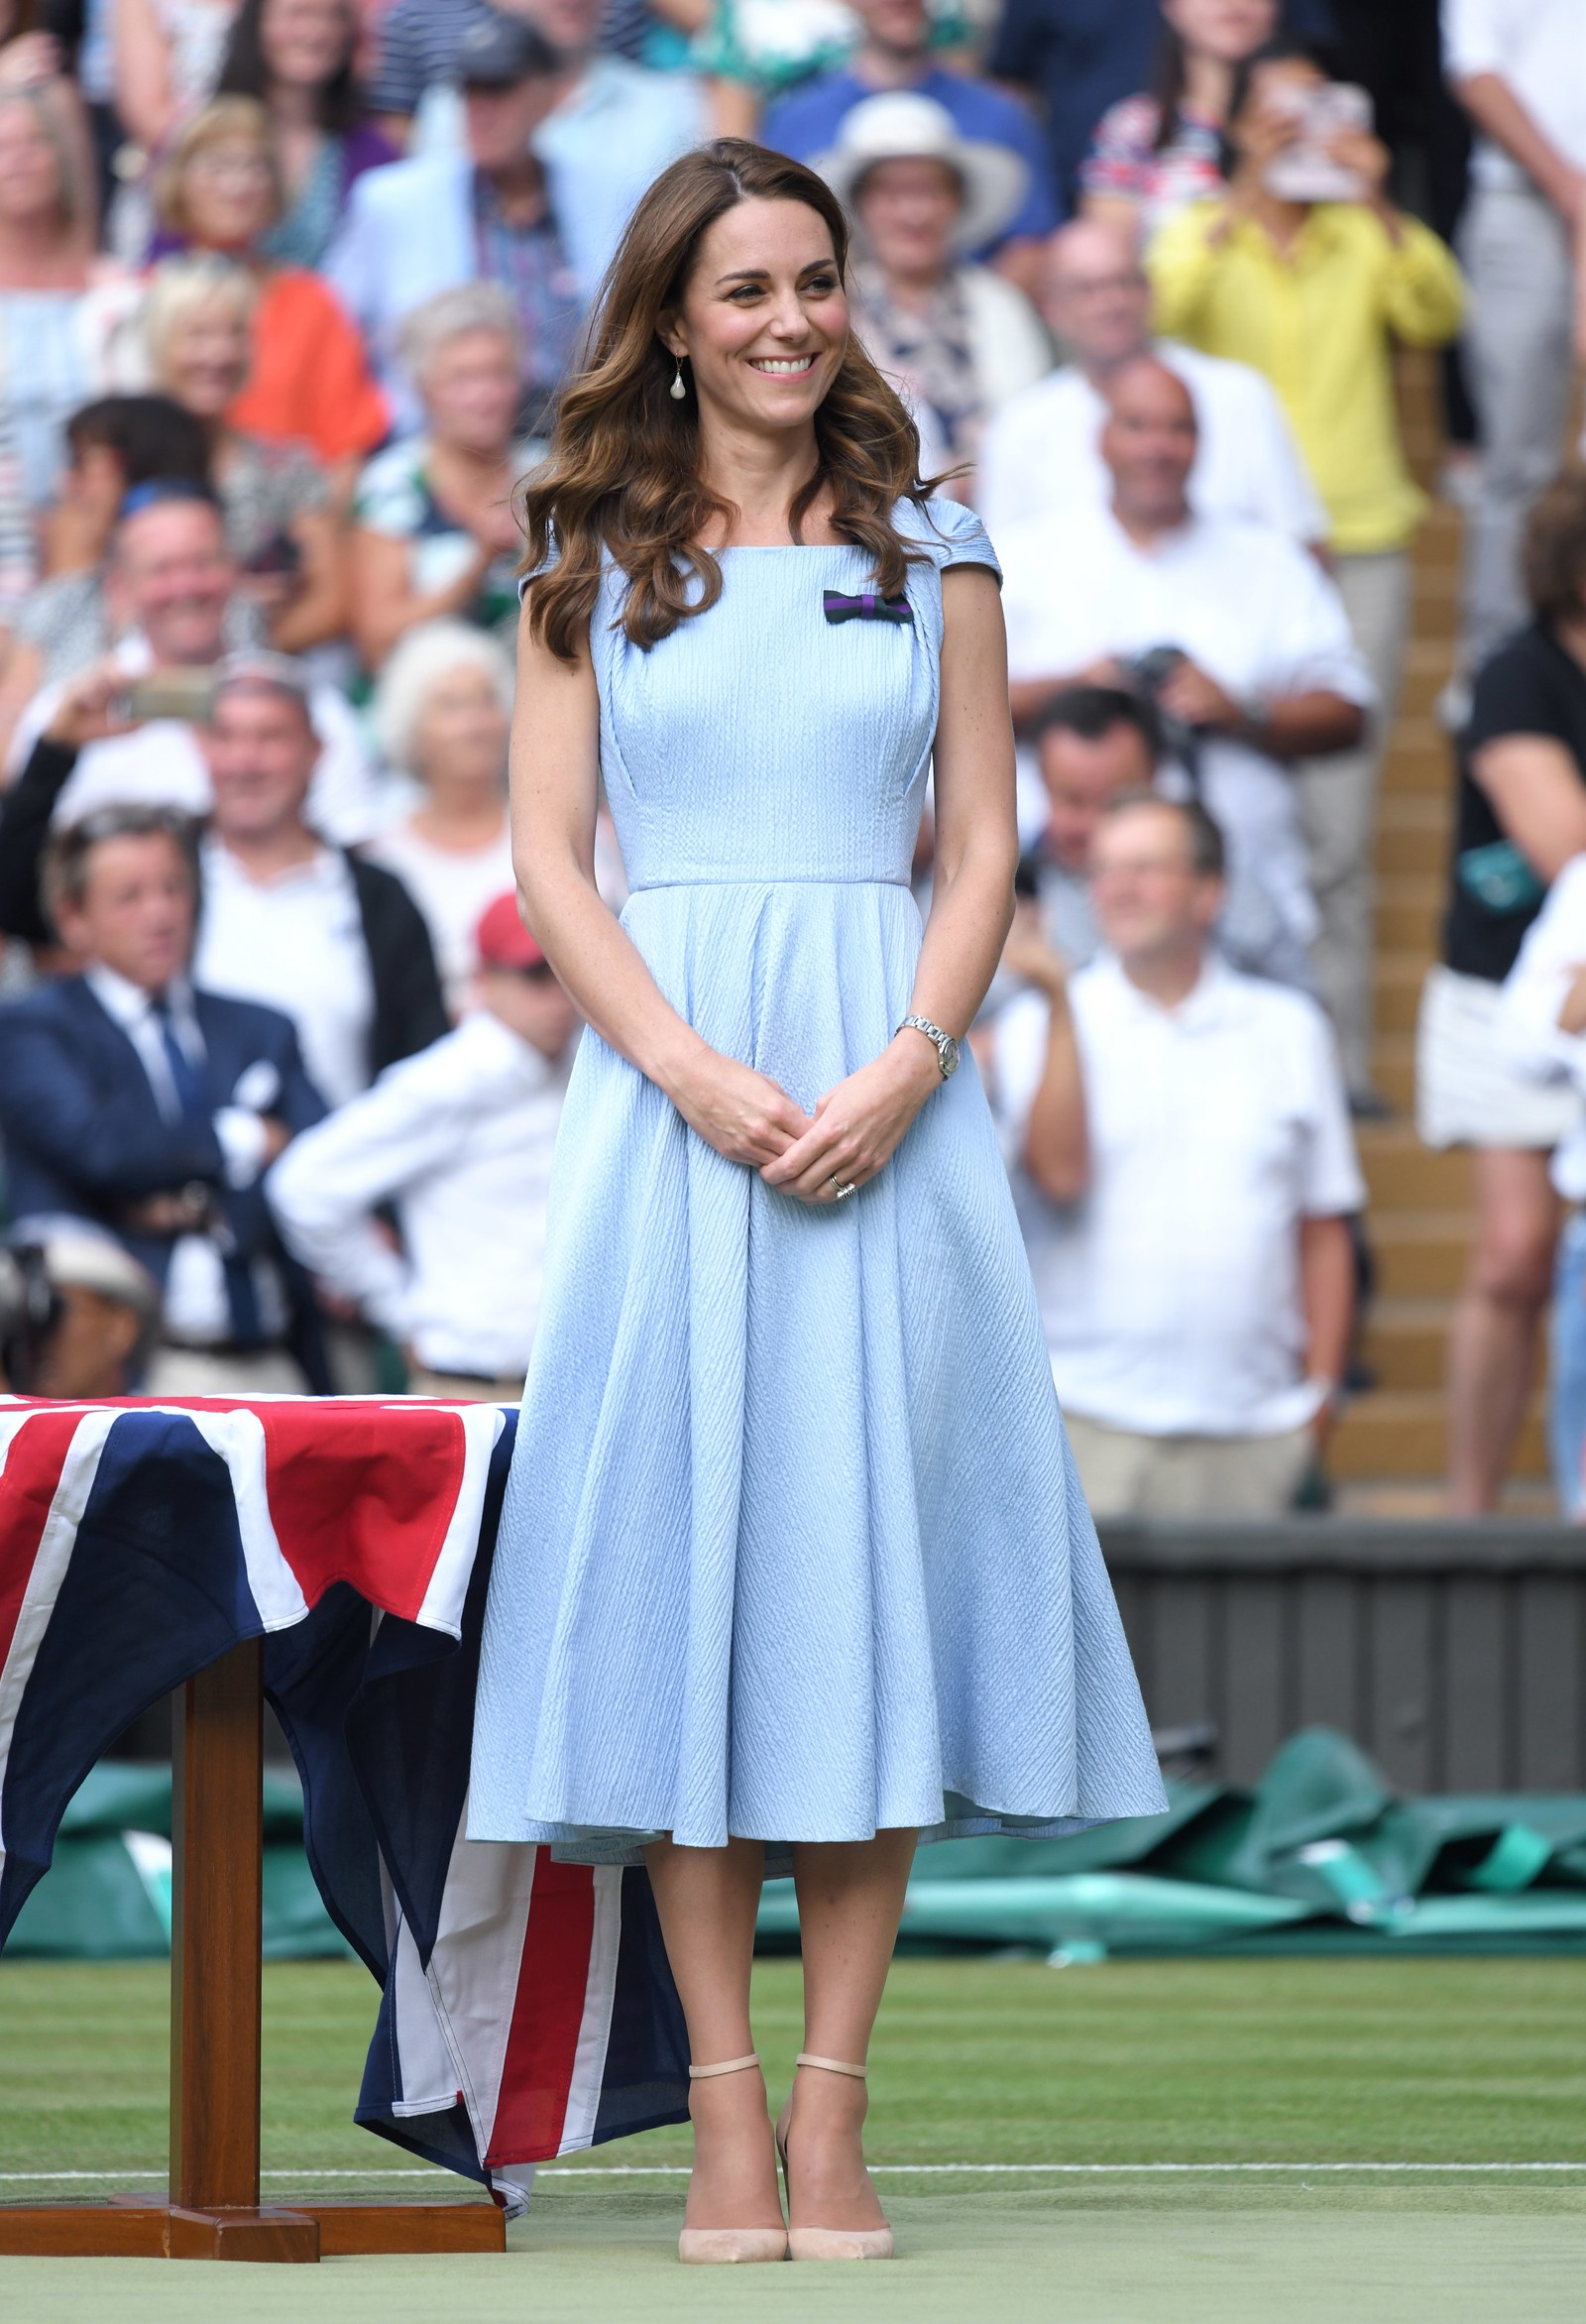 Kate Middleton on Centre court during Men's Finals Day of the Wimbledon